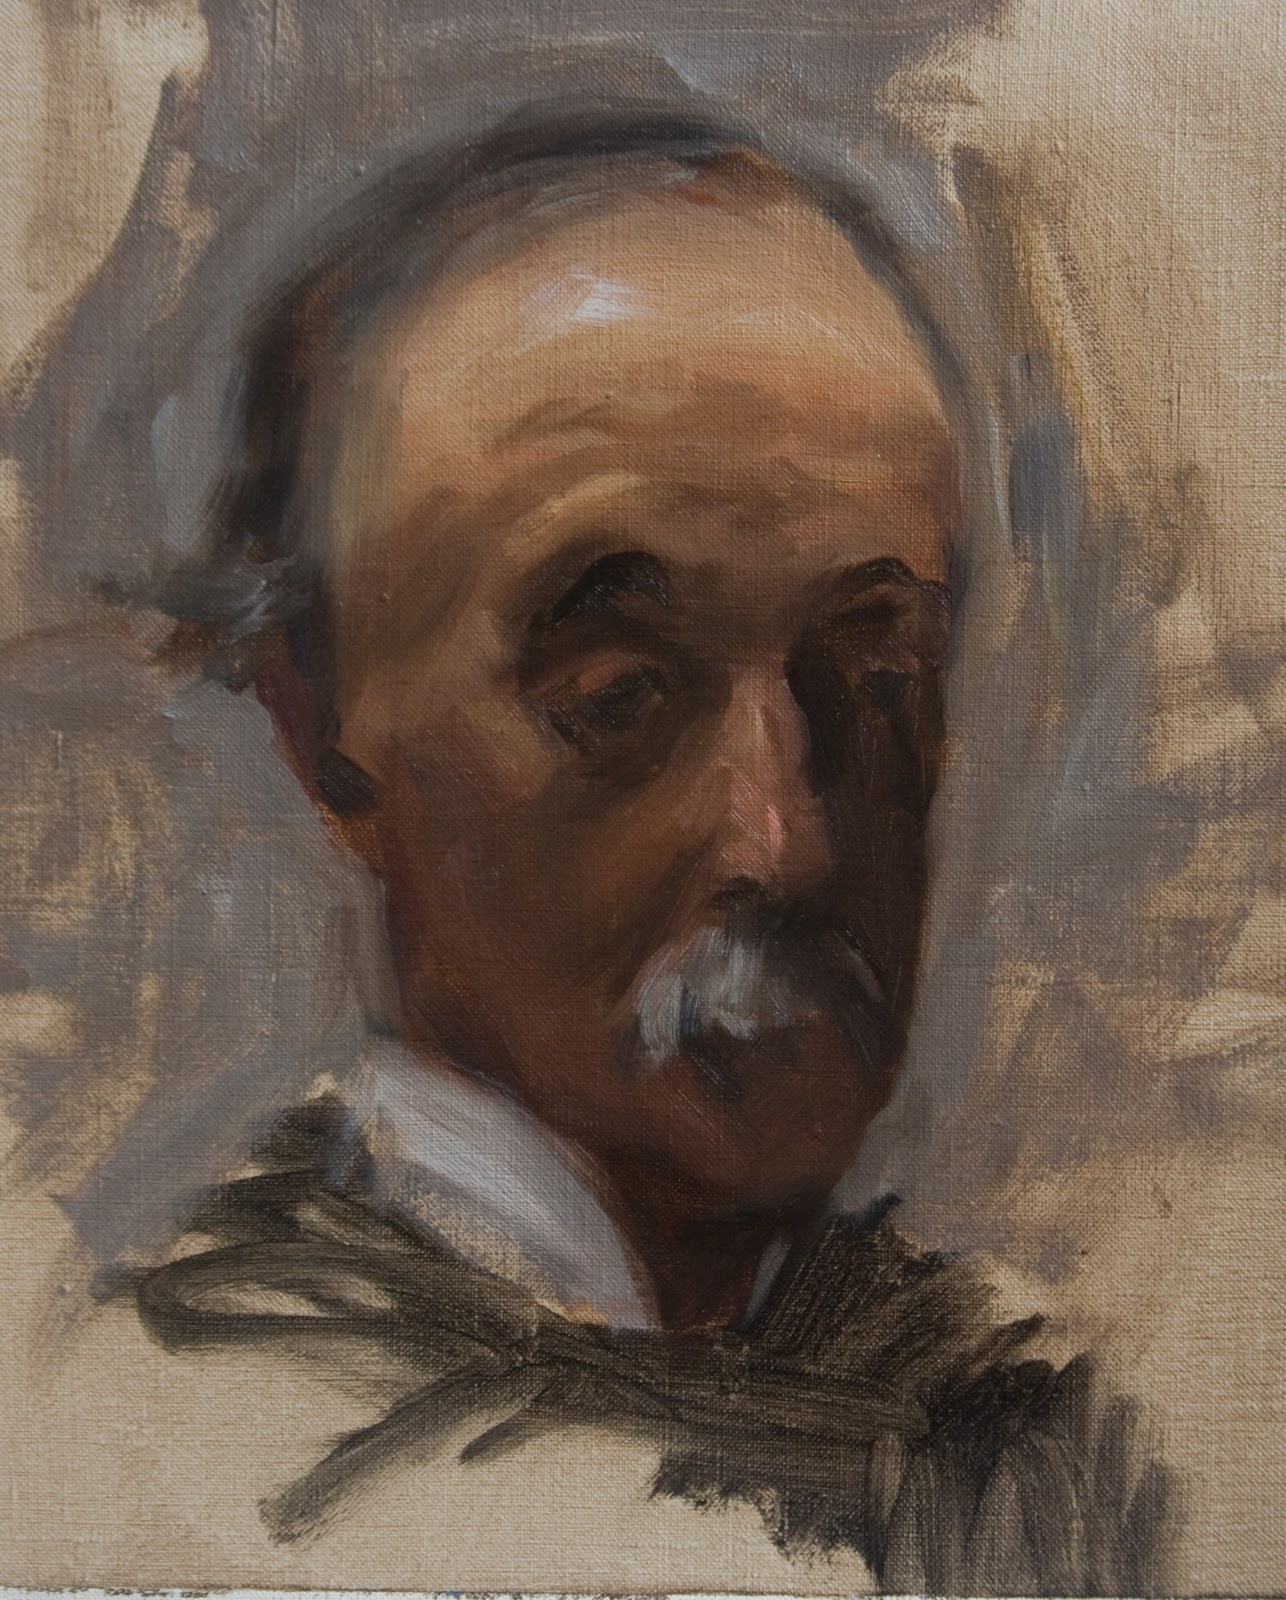 a biography of john singer sargent John singer sargent (/ˈsɑːrdʒənt/ january 12, 1856 – april 14, 1925) was an american artist, considered the leading portrait painter of his generation for his evocations of edwardian era luxury during his career, he created roughly 900 oil paintings and more than 2,000 watercolors, as .